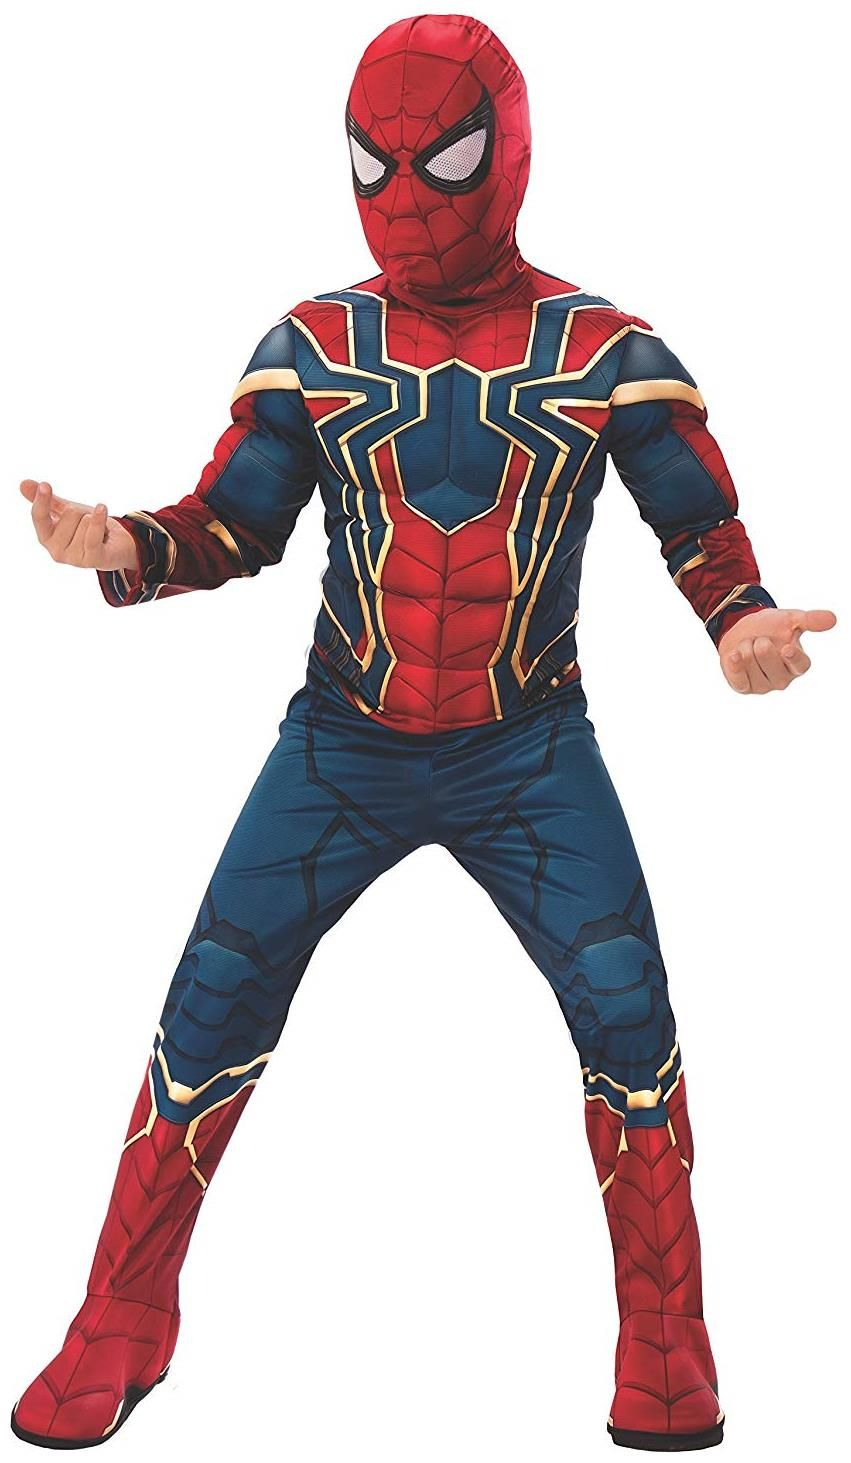 Marvel Avengers Infinity War Iron Spider Deluxe Child Costume